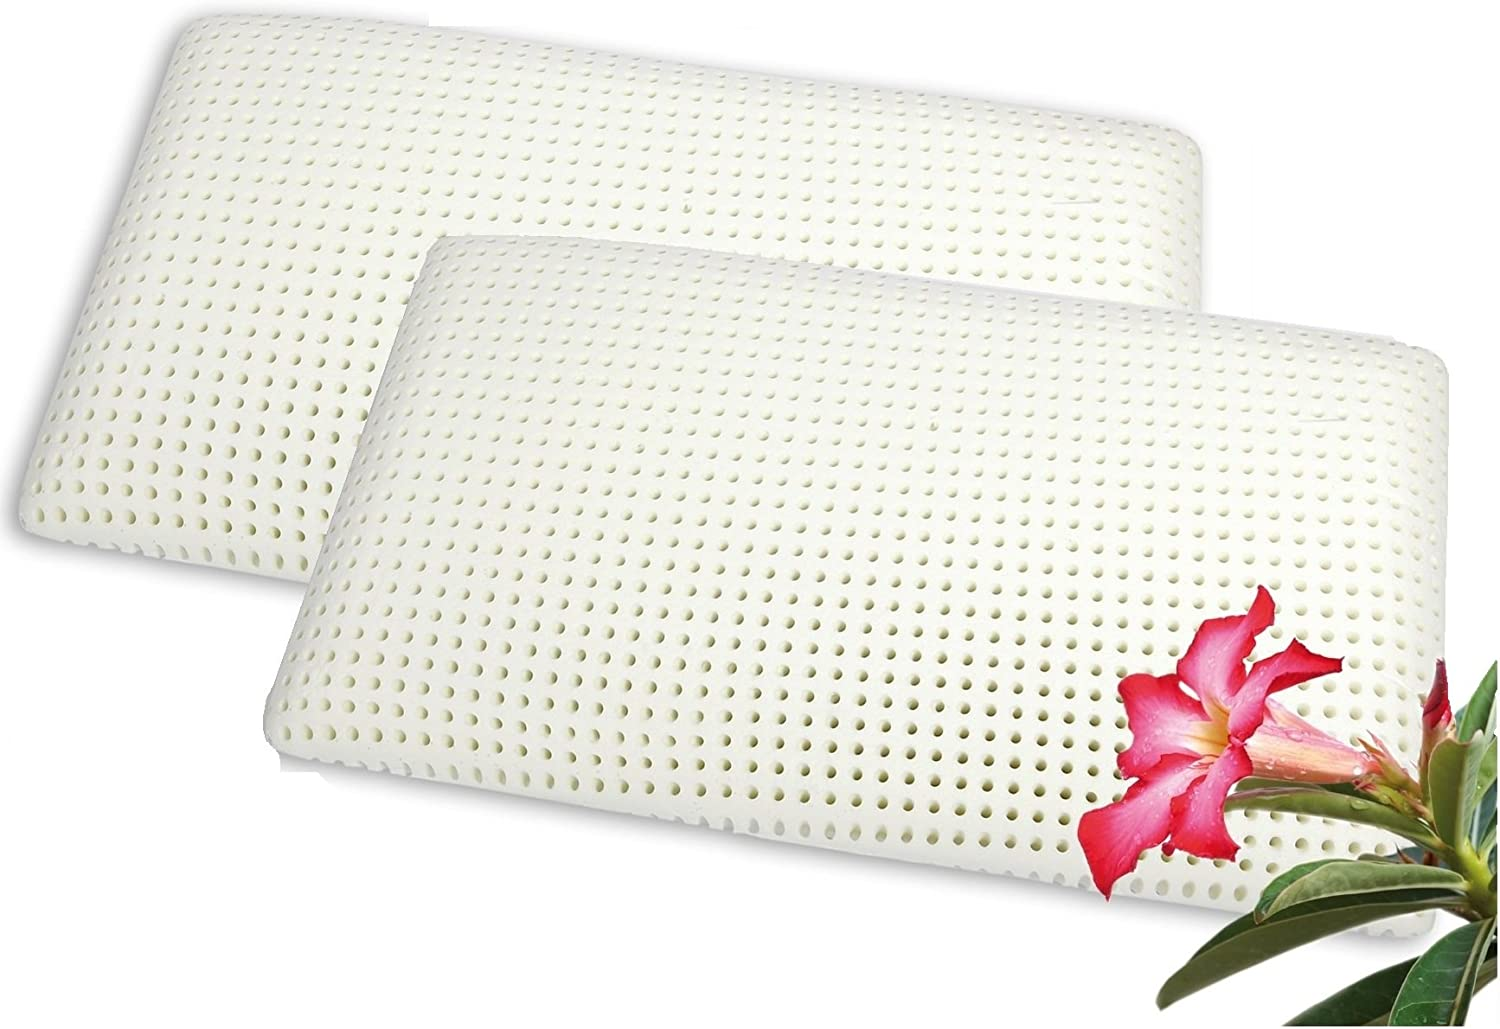 venixsoft PREMIUM DEAL Pair of latex foam pillows with more drilling for more transpiration, with pure cotton pillowcase, made in Italy